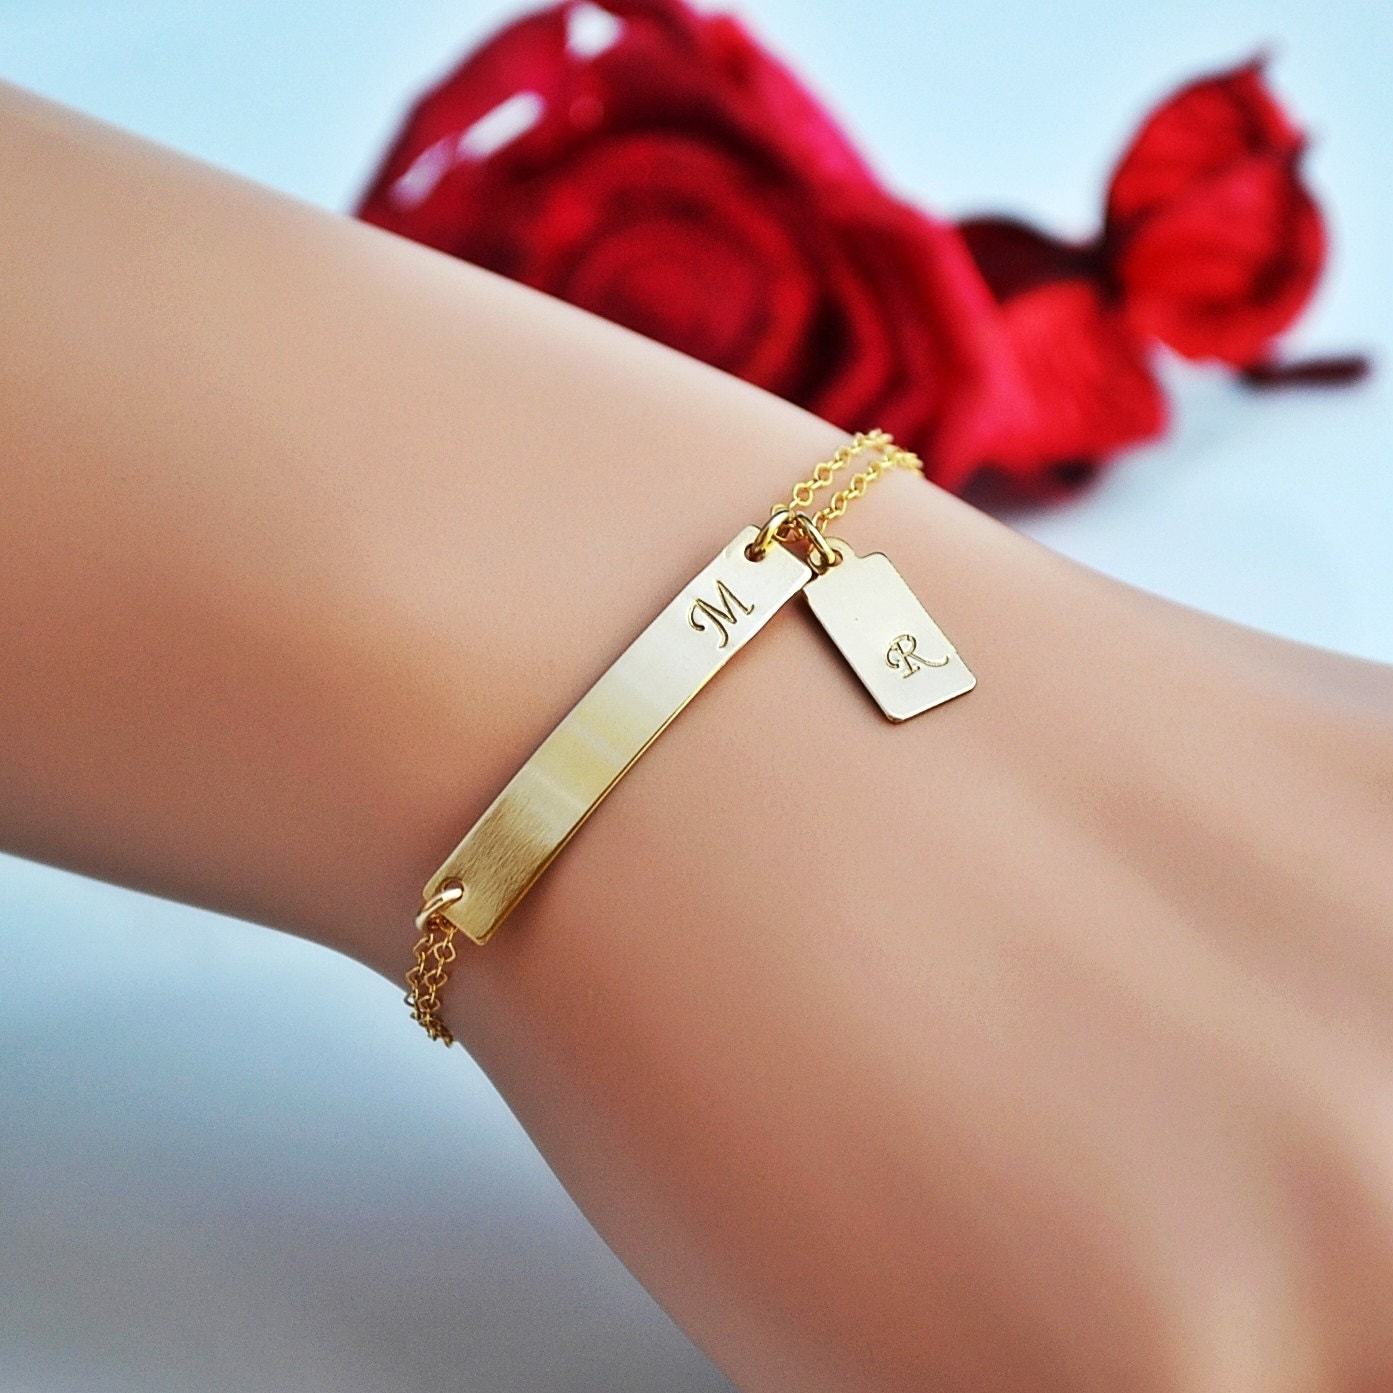 Personalized Bracelet Charms: Two Initial Bracelet Gold Bar Bracelet Personalized